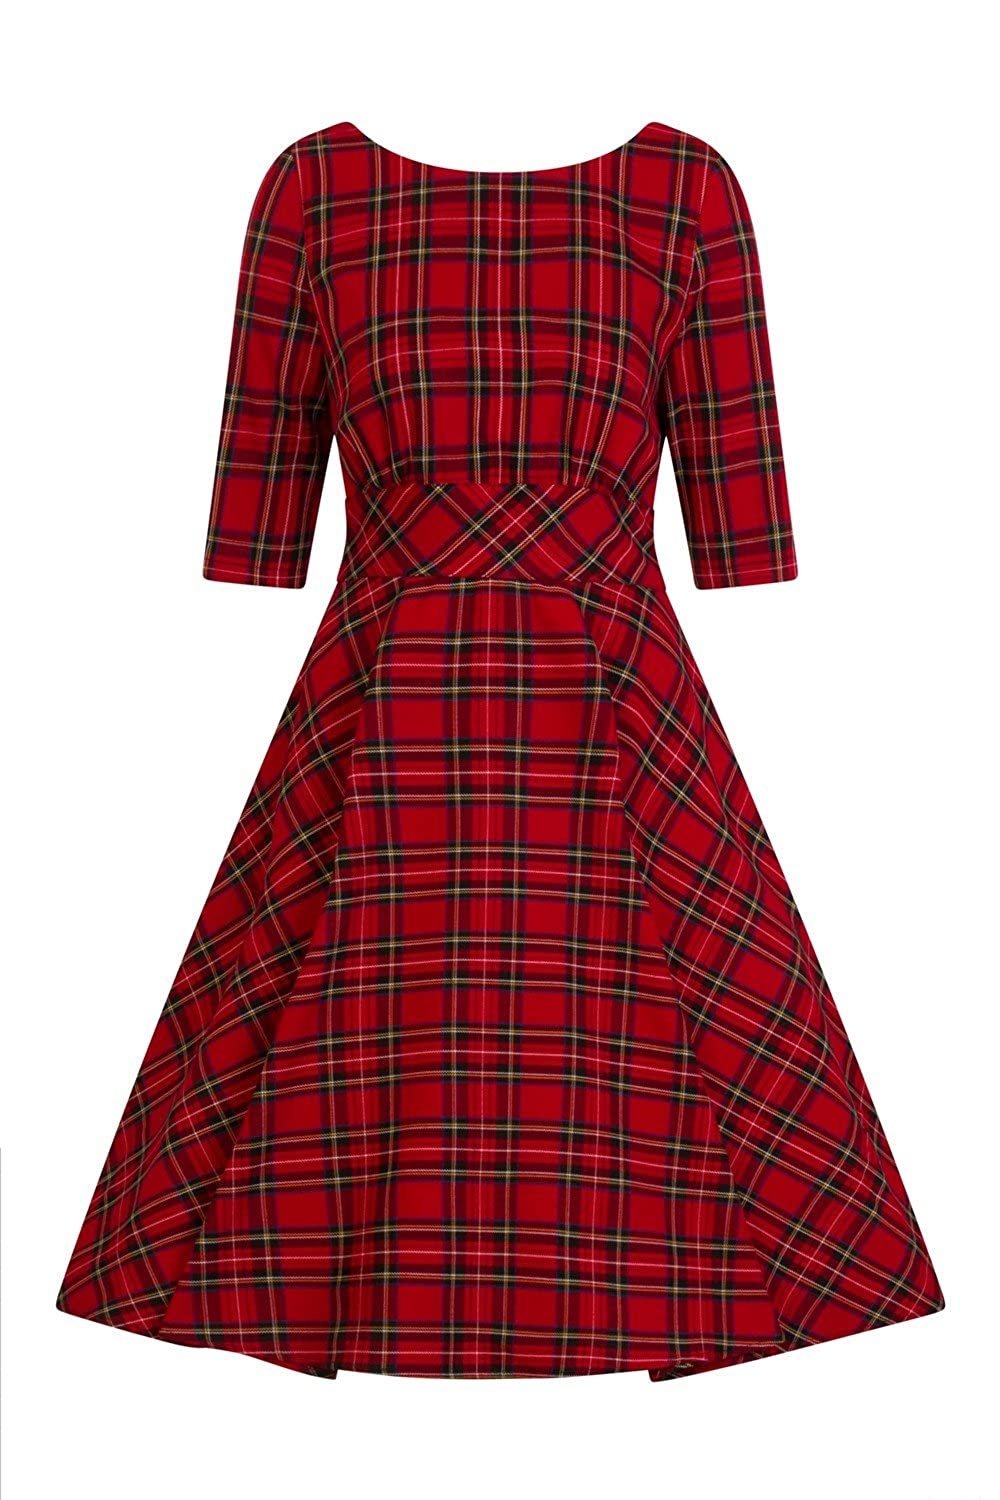 1940s Plus Size Dresses | Swing Dress, Tea Dress Hell Bunny Irvine Tartan 1950s Vintage Retro Dress XS-4XL $72.99 AT vintagedancer.com